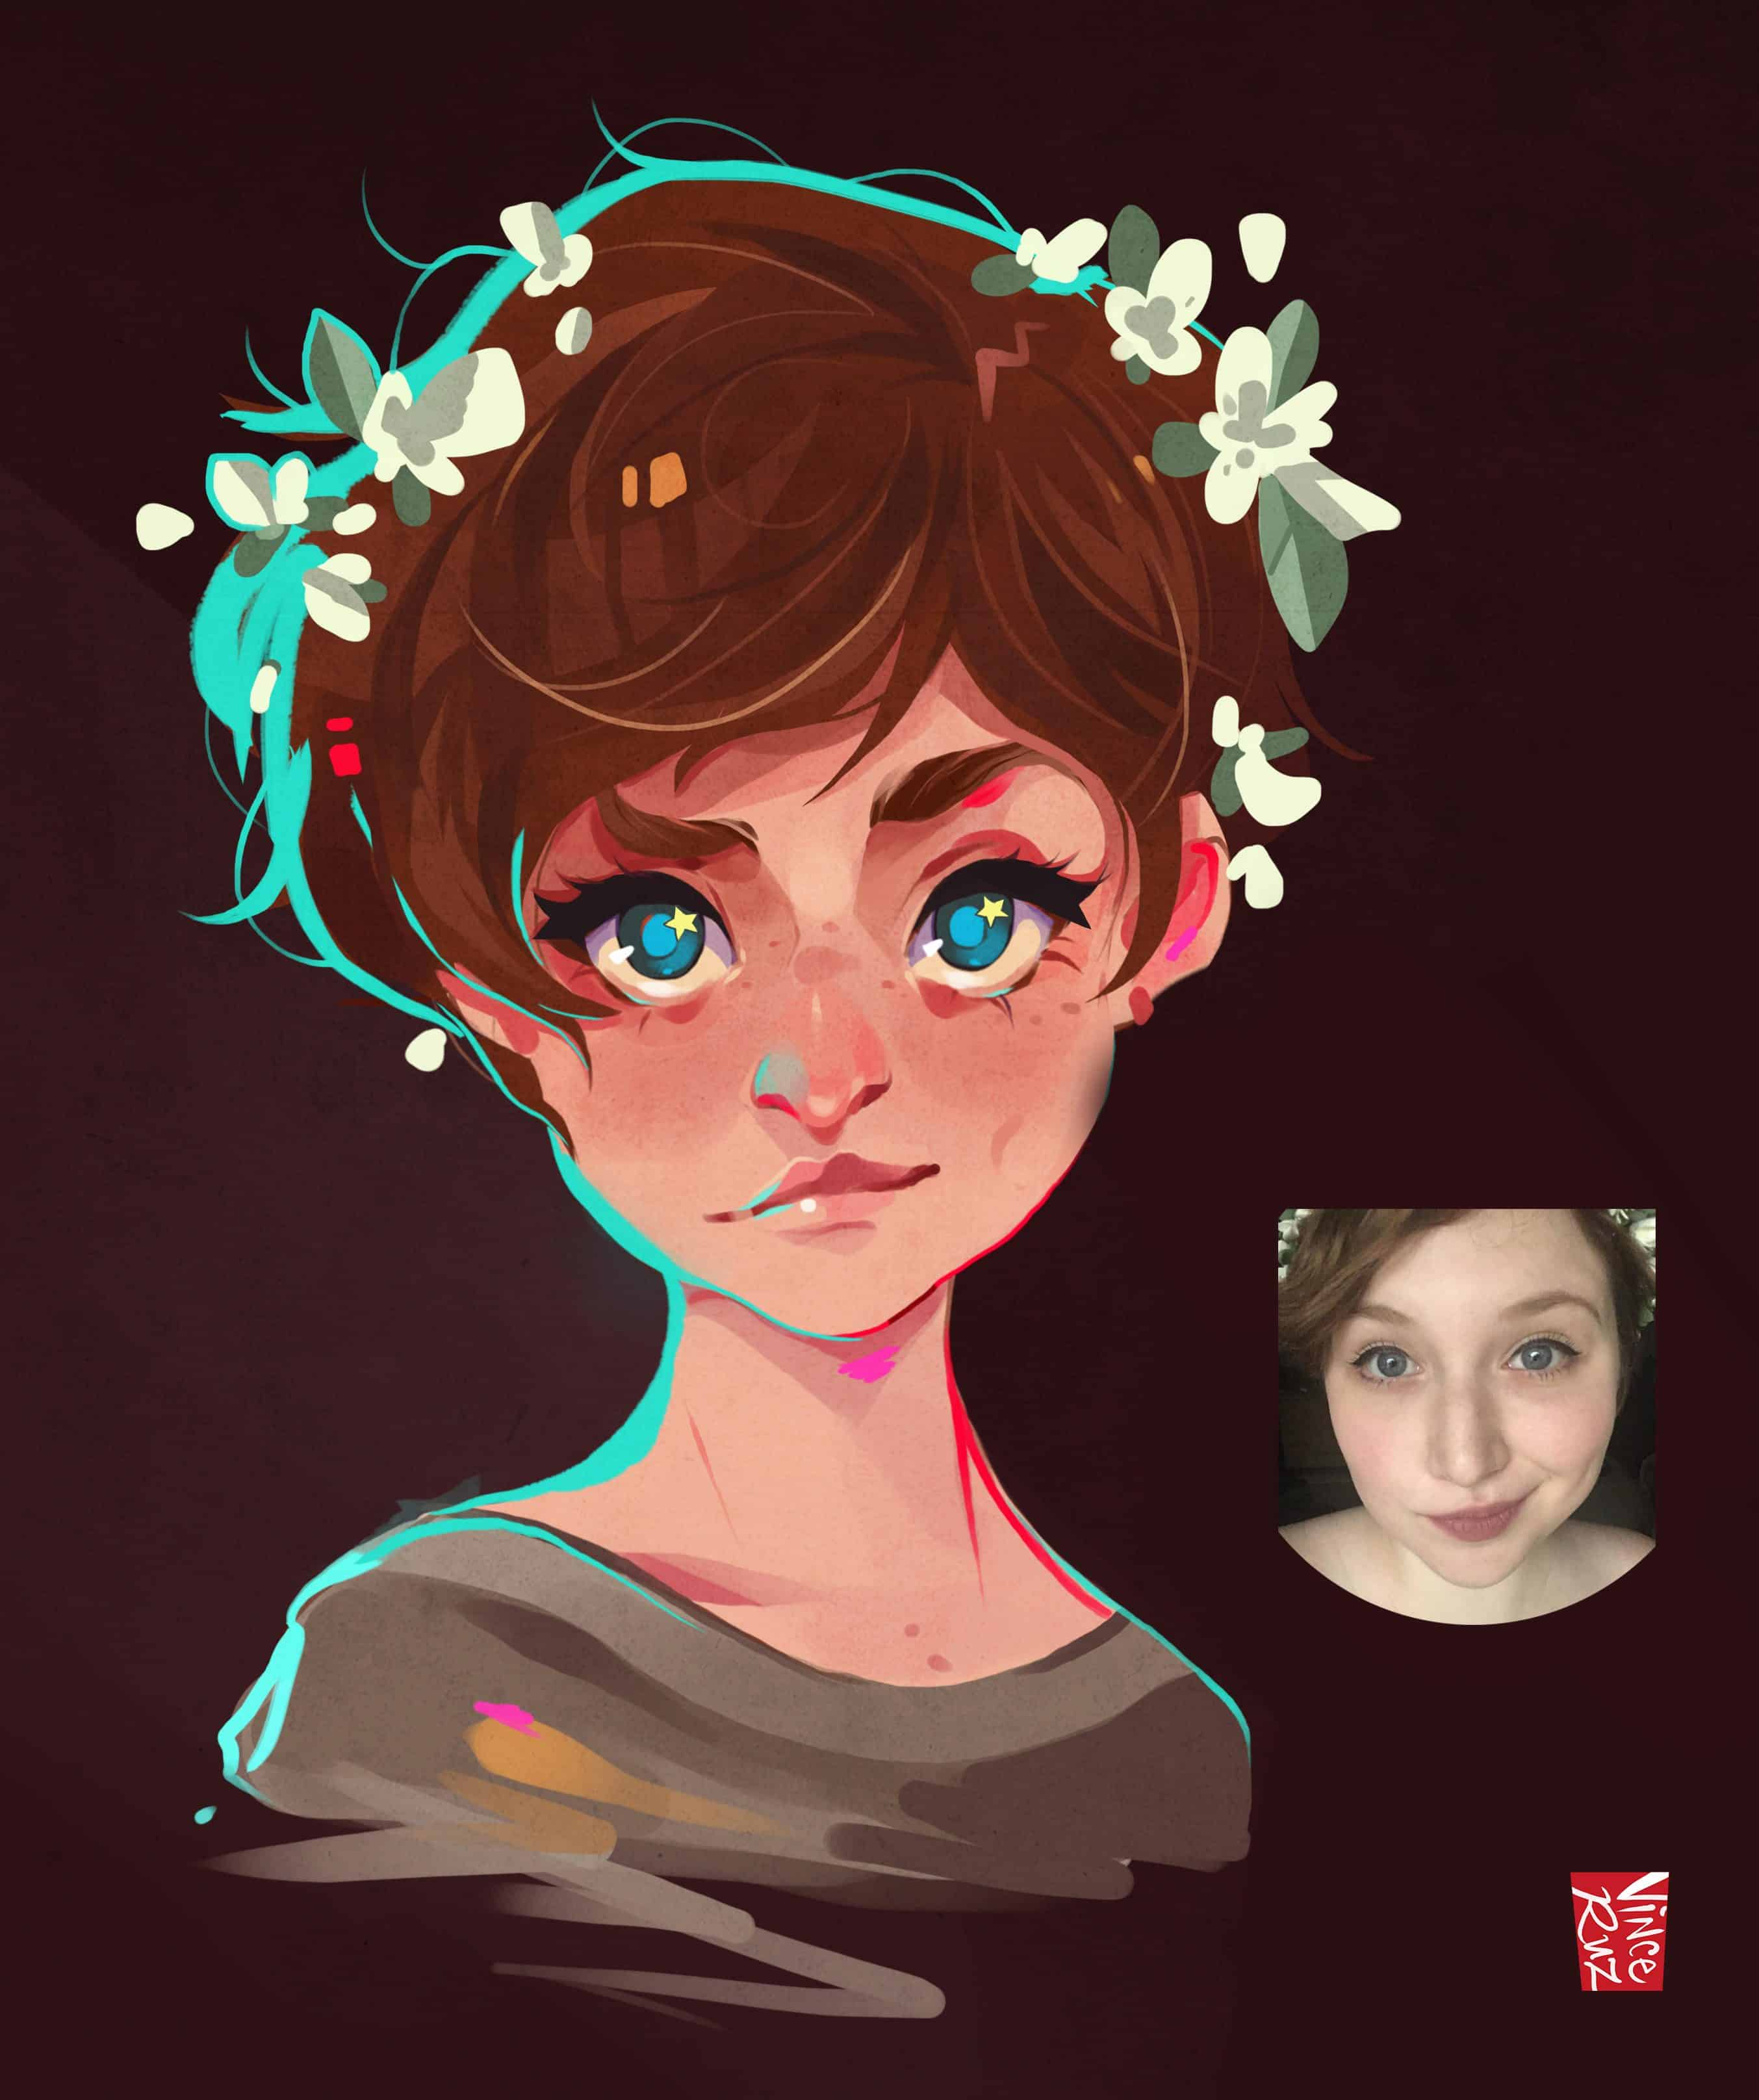 Commission Sample by Vince Ruz Portrait of a Girl with Flowers in Her Hair